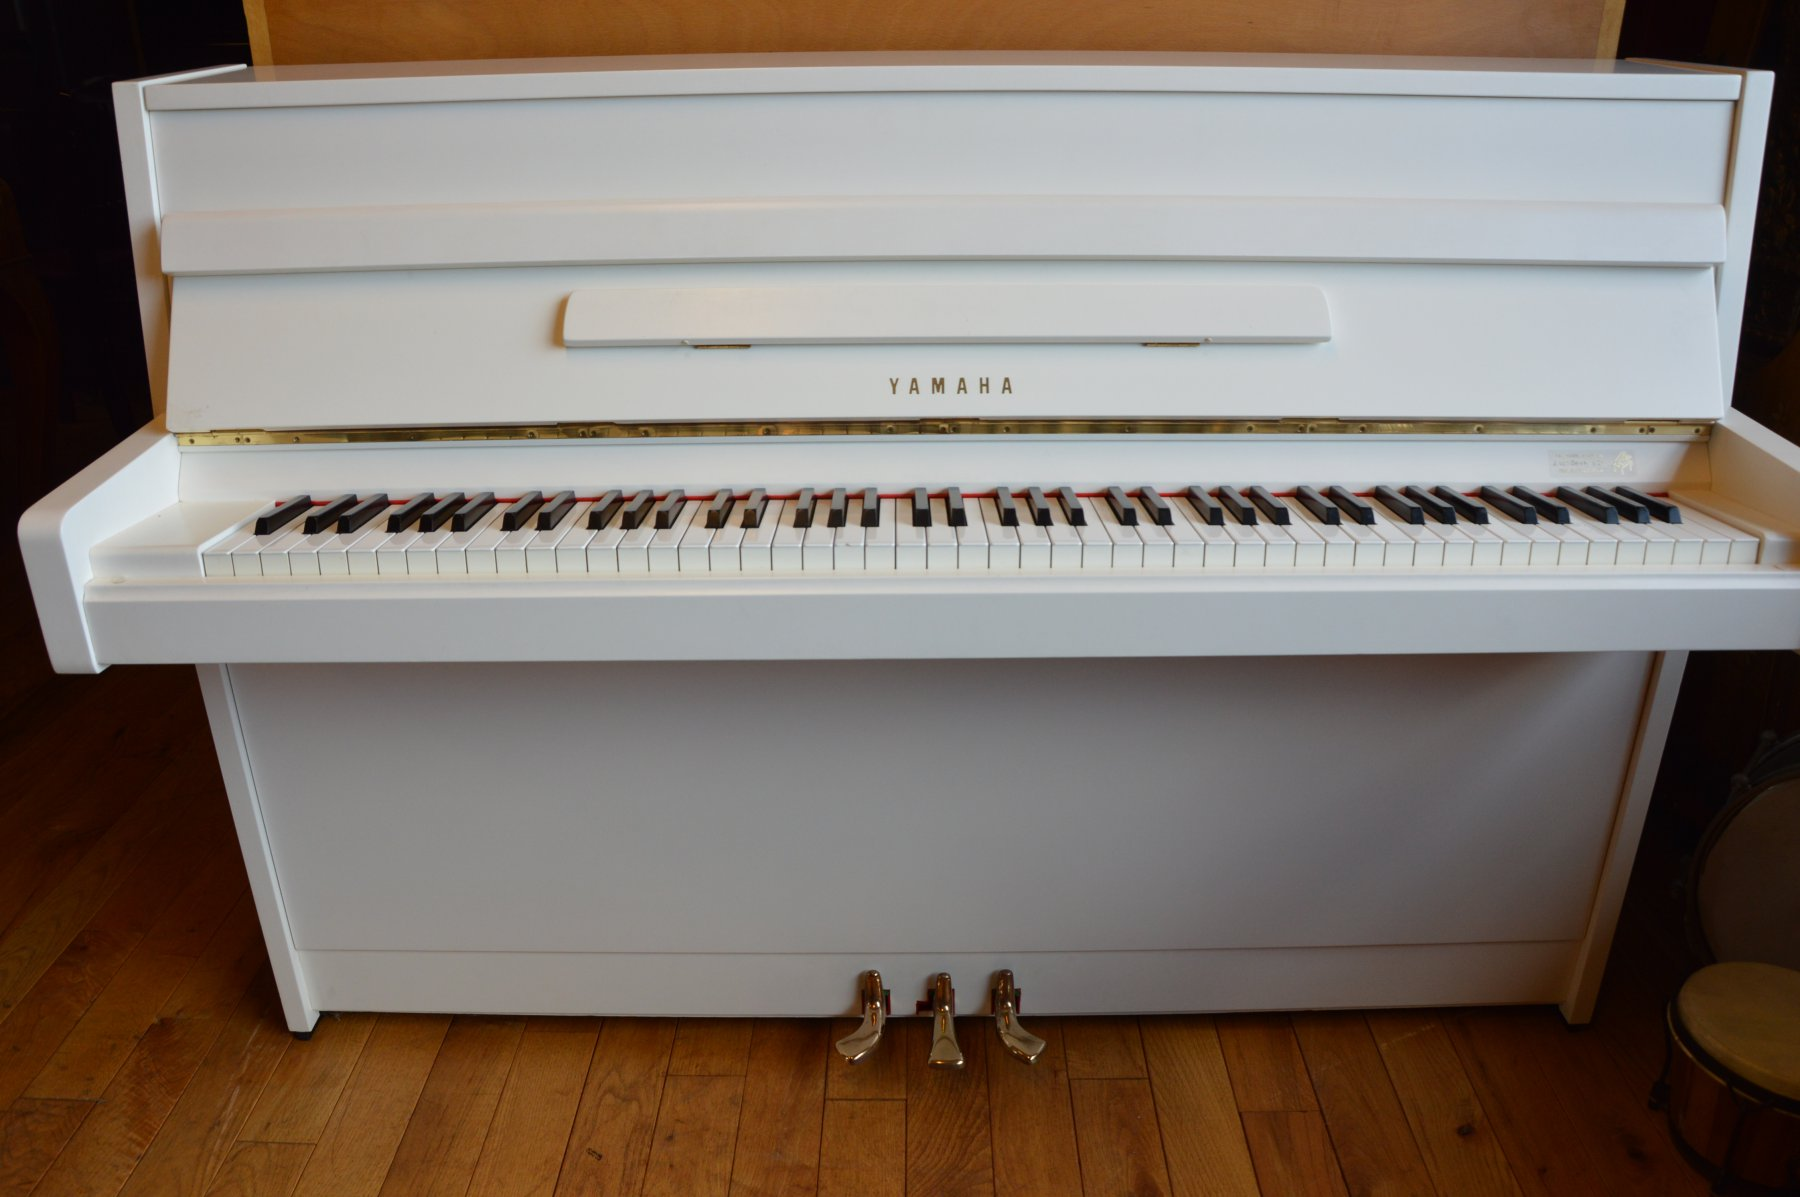 Yamaha piano wit